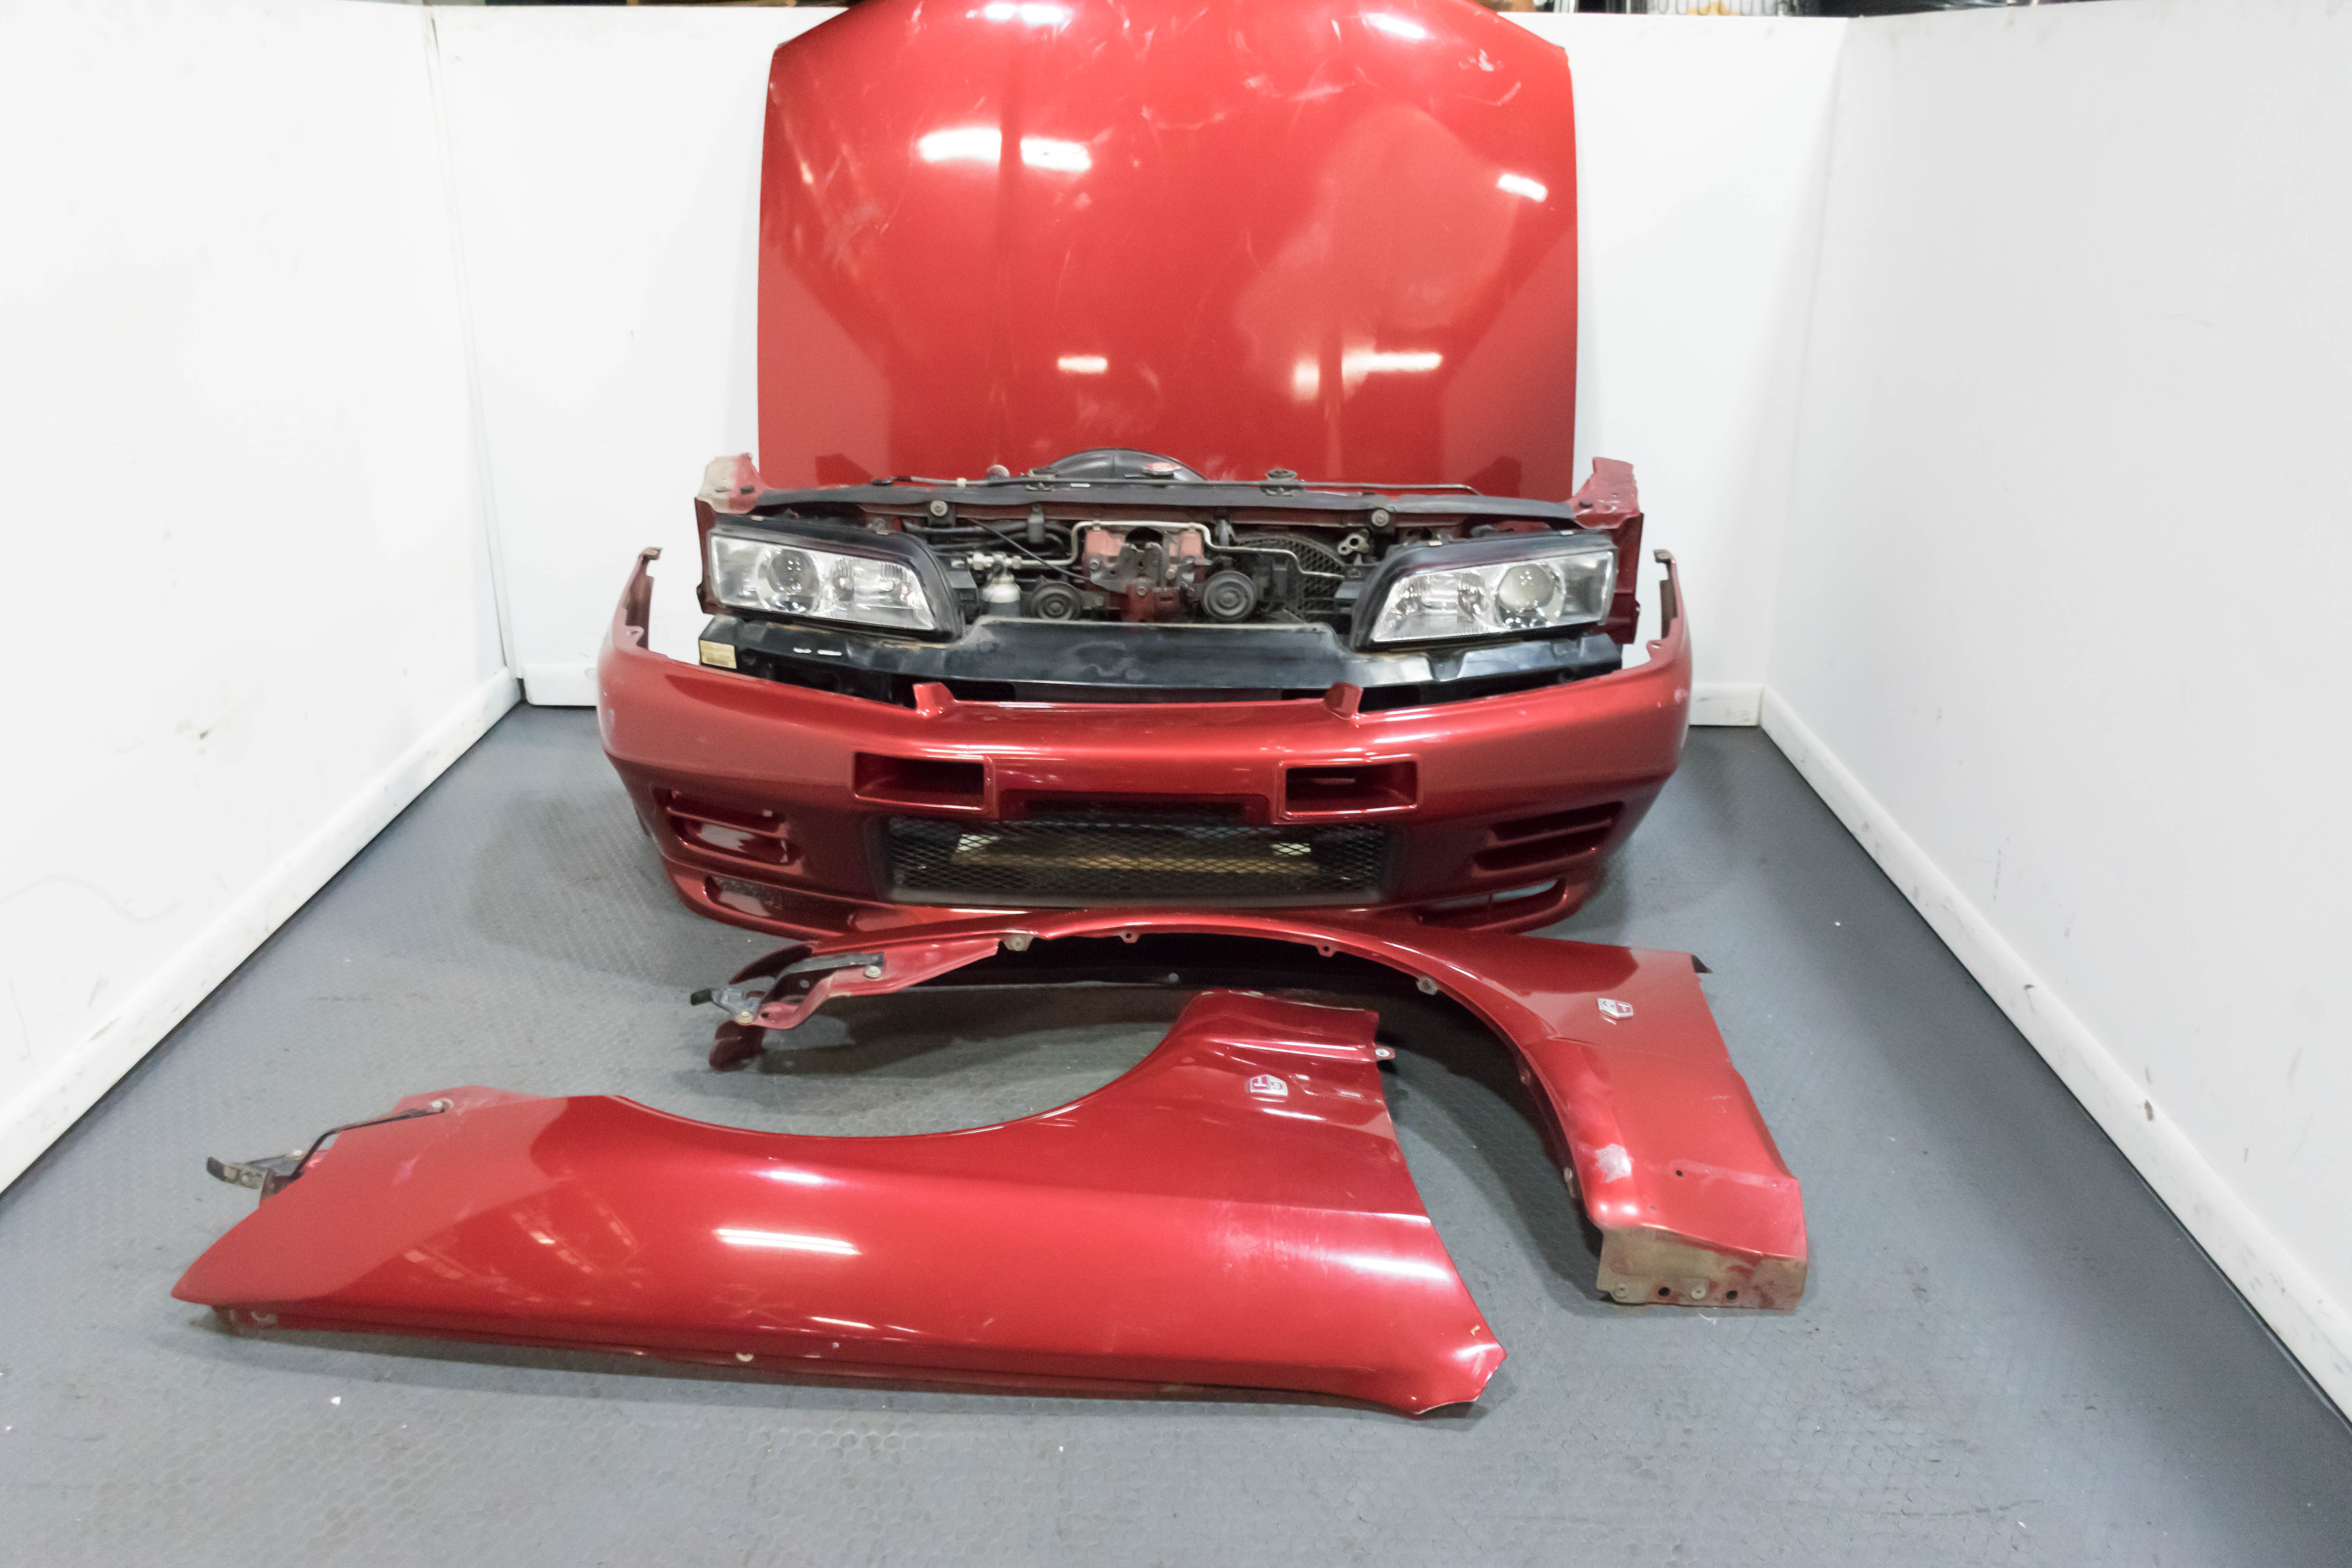 JDM Nissan Skyline GTR R32 Complete Front Clip with Nismo N1 Style Front  Bumper Fenders Hood Headlights